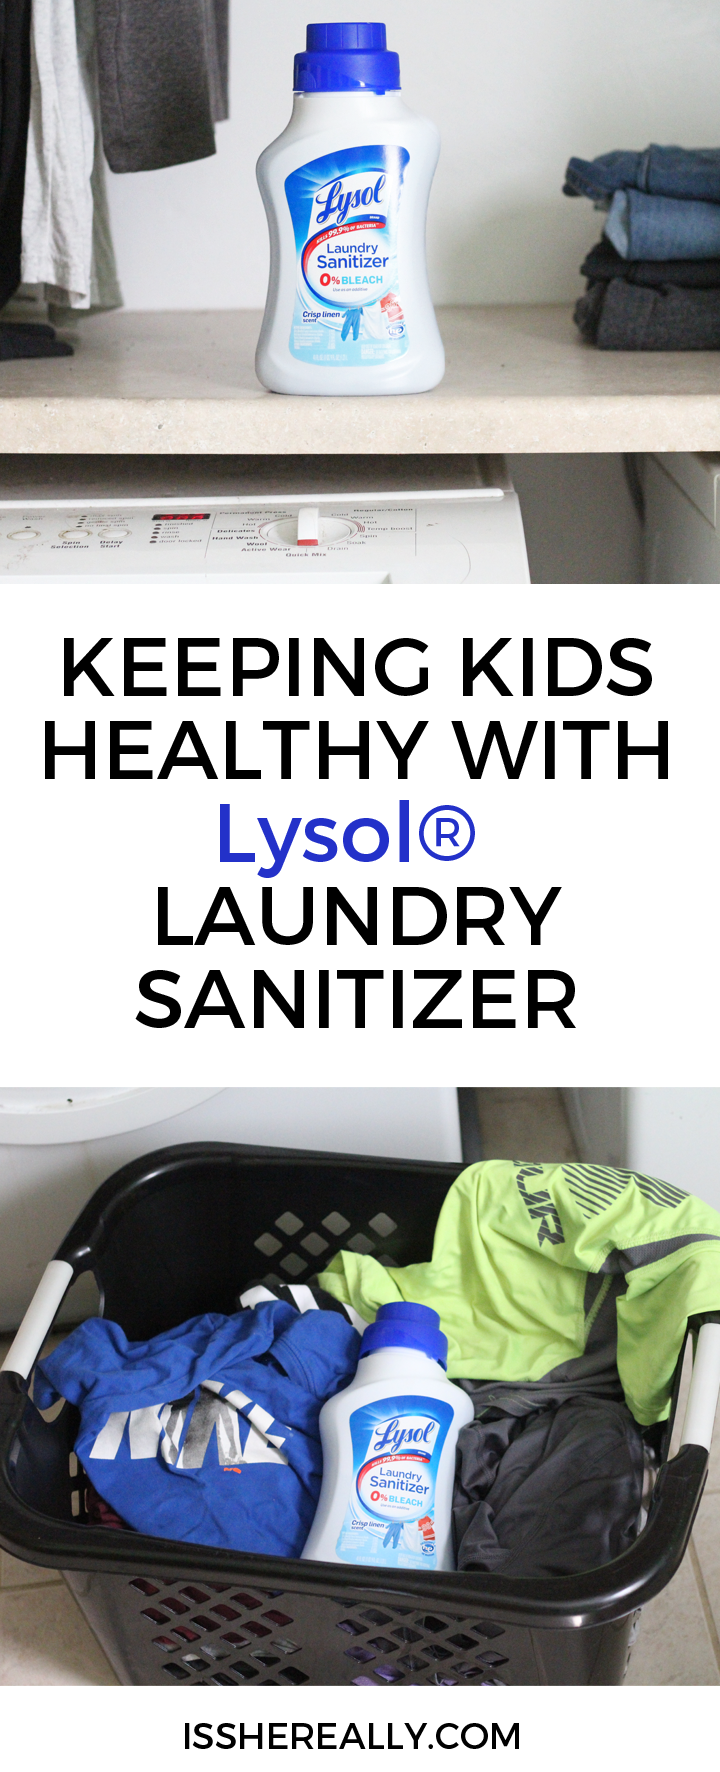 Keeping kids healthy with Lysol Laundry Sanitizer. Laundry hacks and tips for moms with busy kids @ isshereally.com